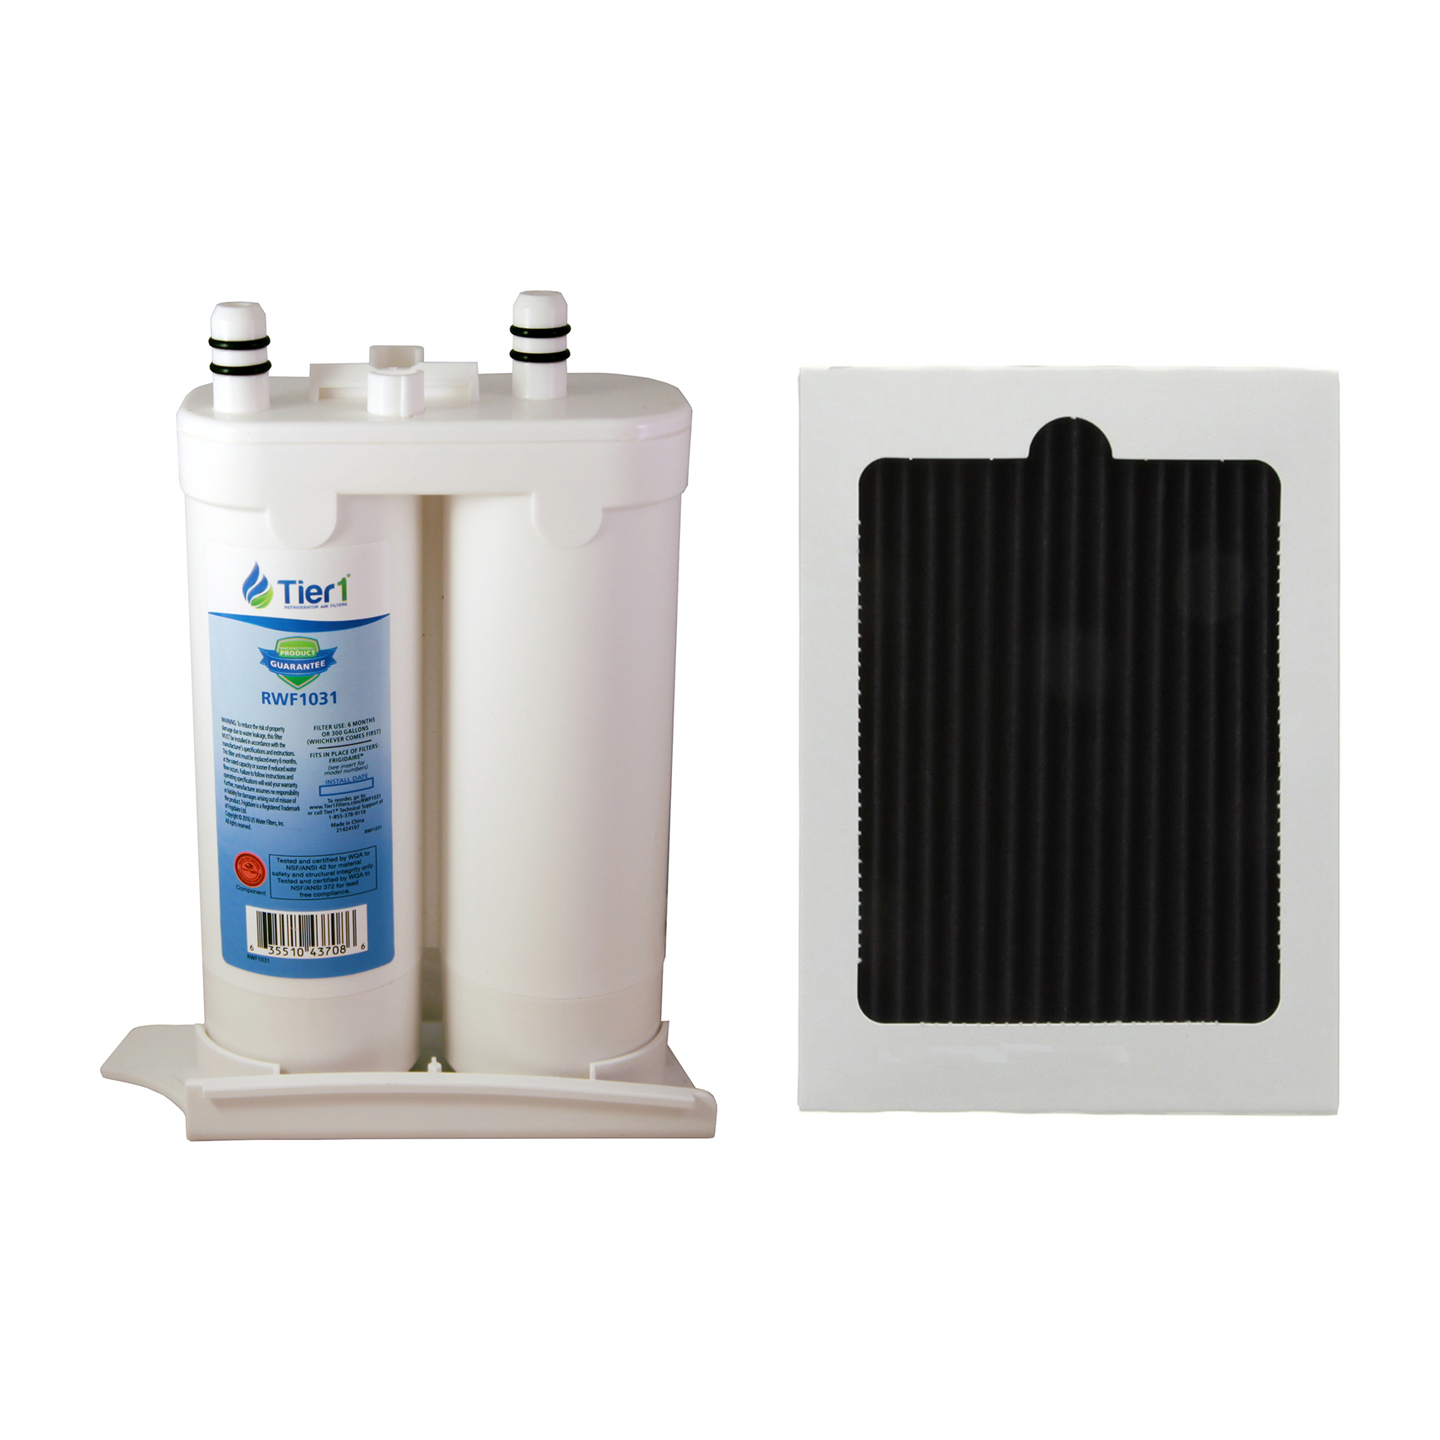 Frigidaire WF2CB and PAULTRA Comparable Refrigerator Water Filter and Air Filter Combo by Tier1 TIER1_RWF1031_COMBO